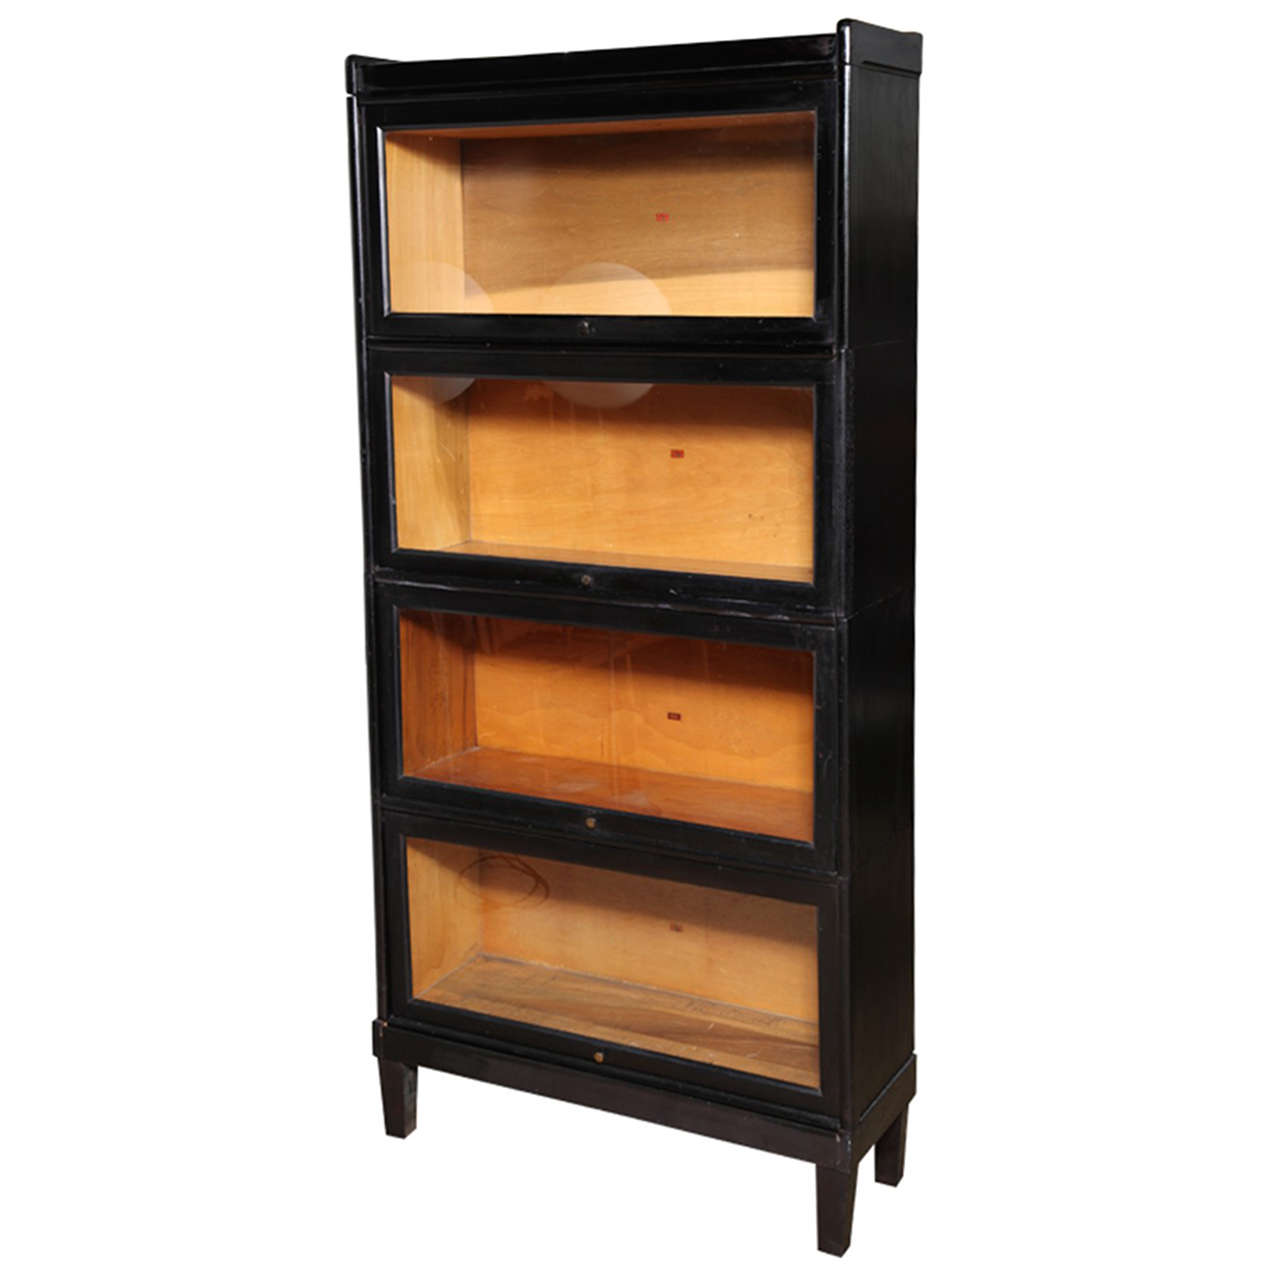 Image of: Rustic Barrister Bookcase